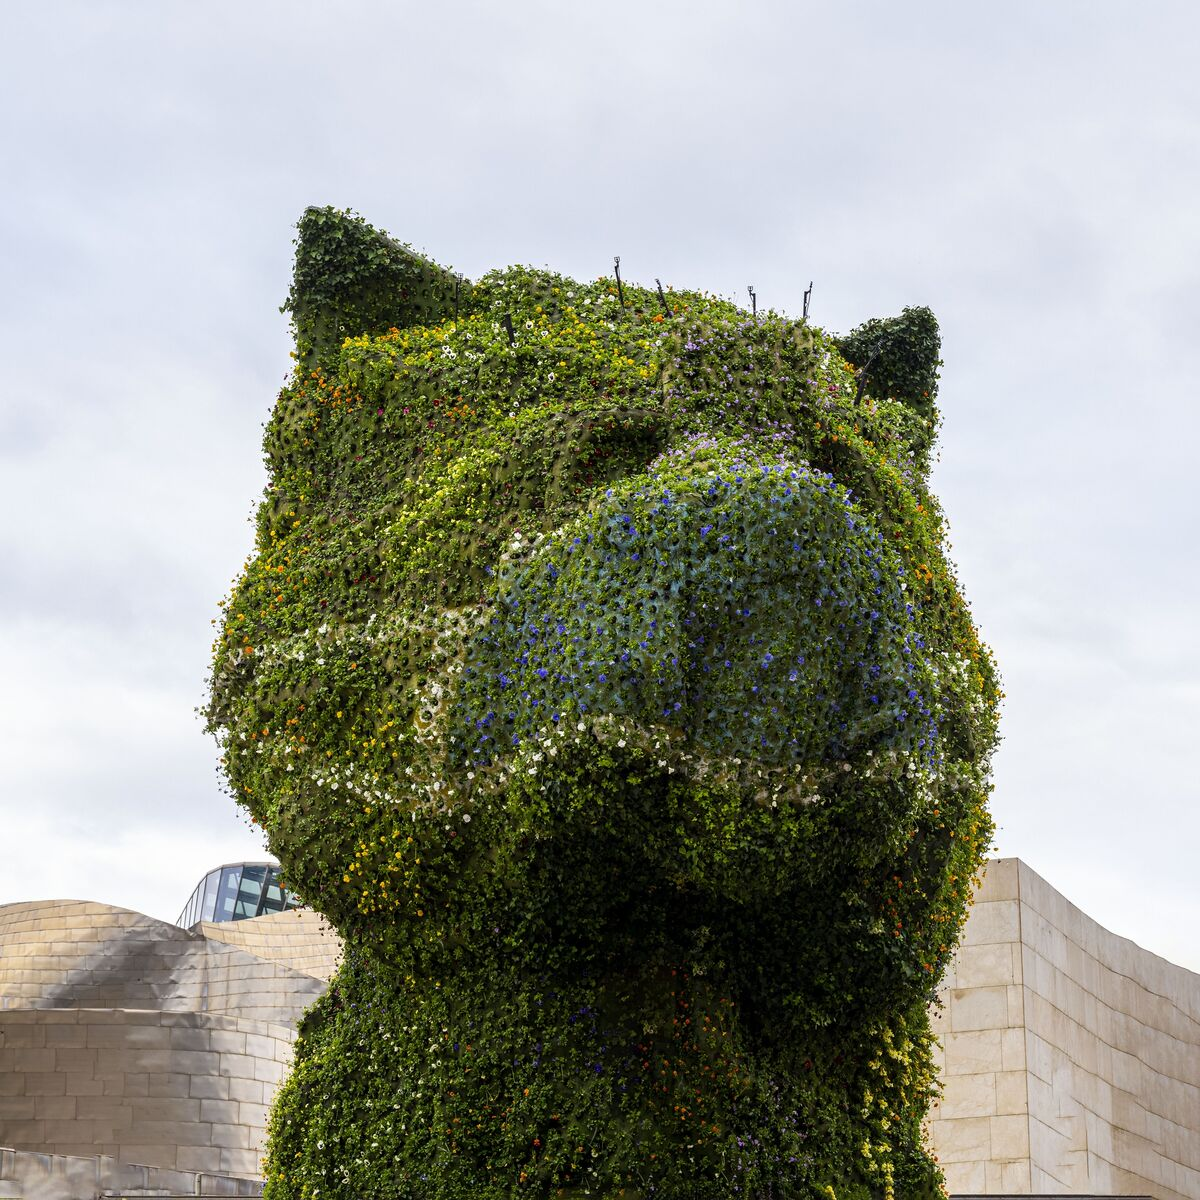 Jeff Koons, Puppy (1992) donning a new face mask. Courtesy Guggenheim Bilbao.